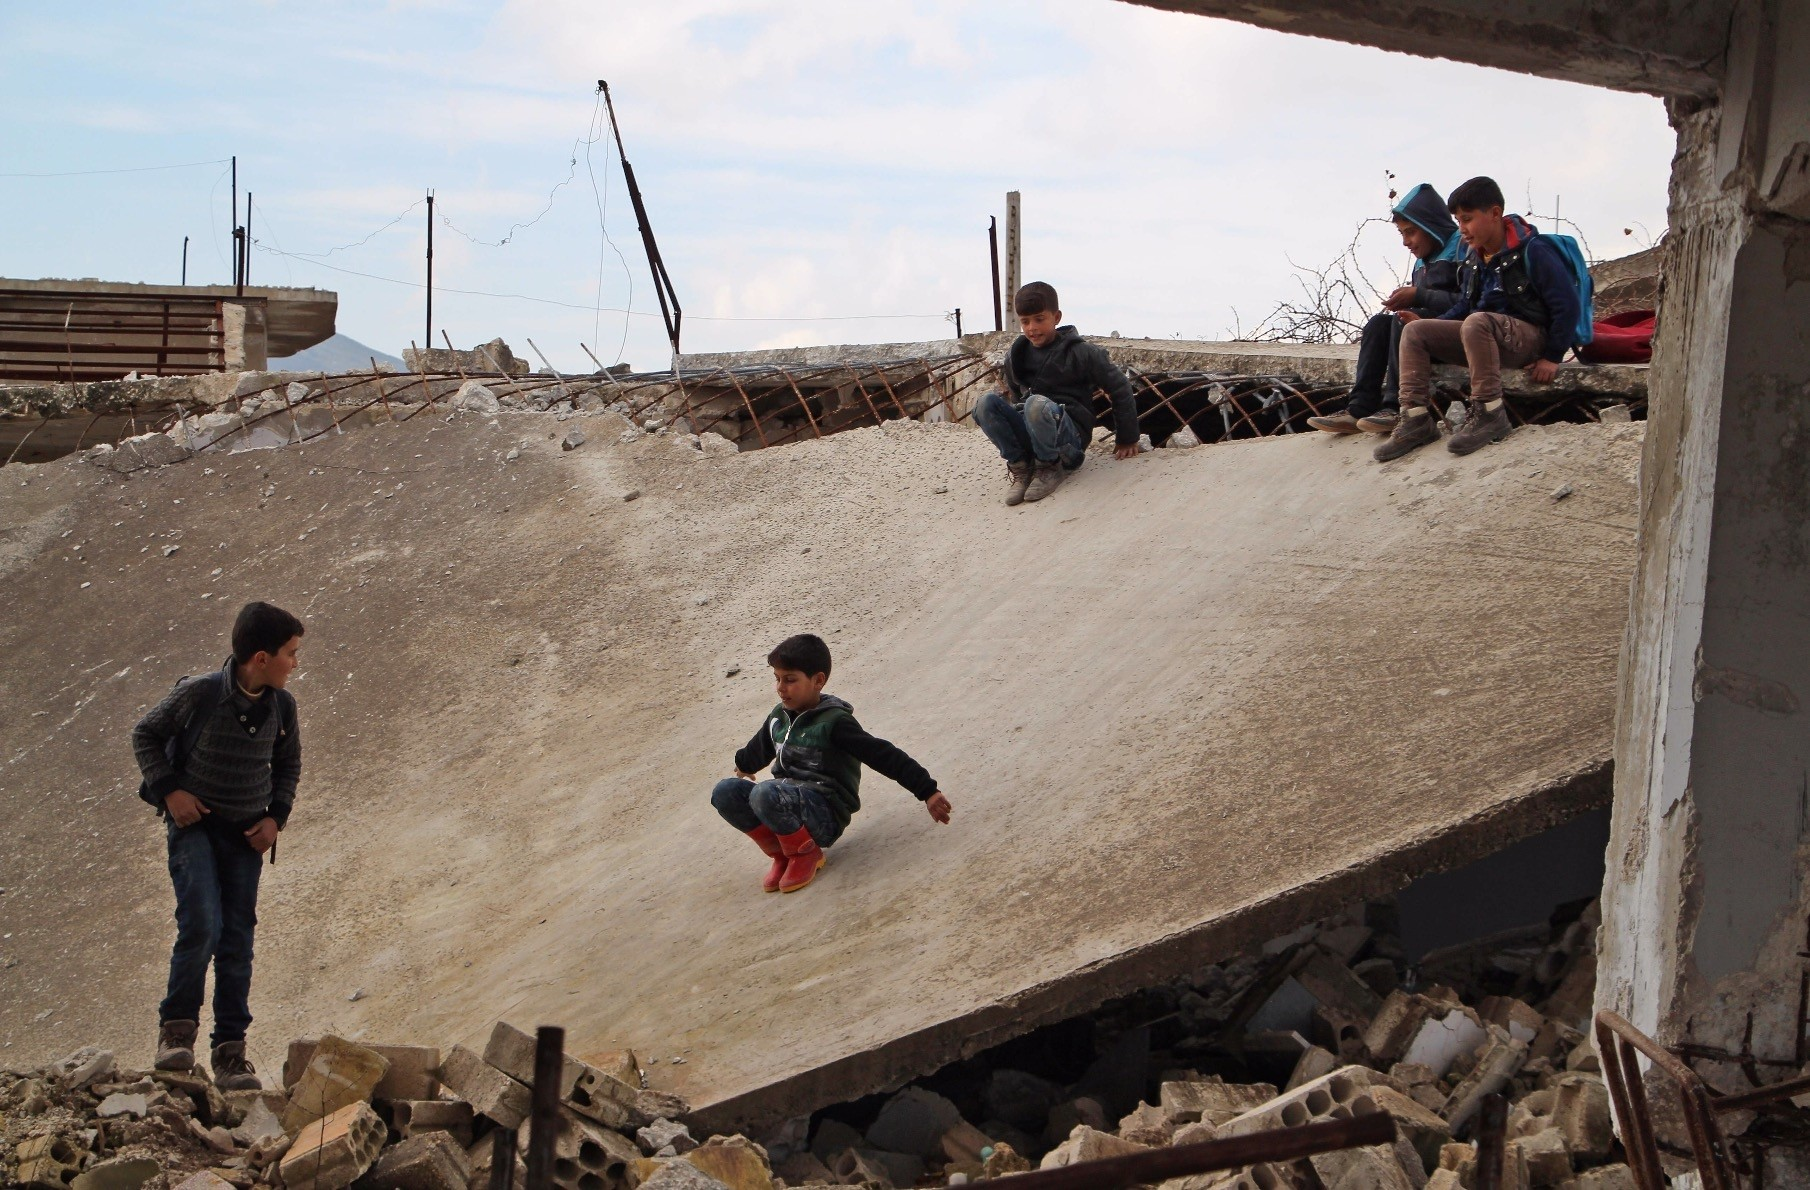 Syrian children slide on the collapsed roof of a school which was bombarded in the district of Jisr  al-Shughur, Idlib, Jan. 30, 2019.